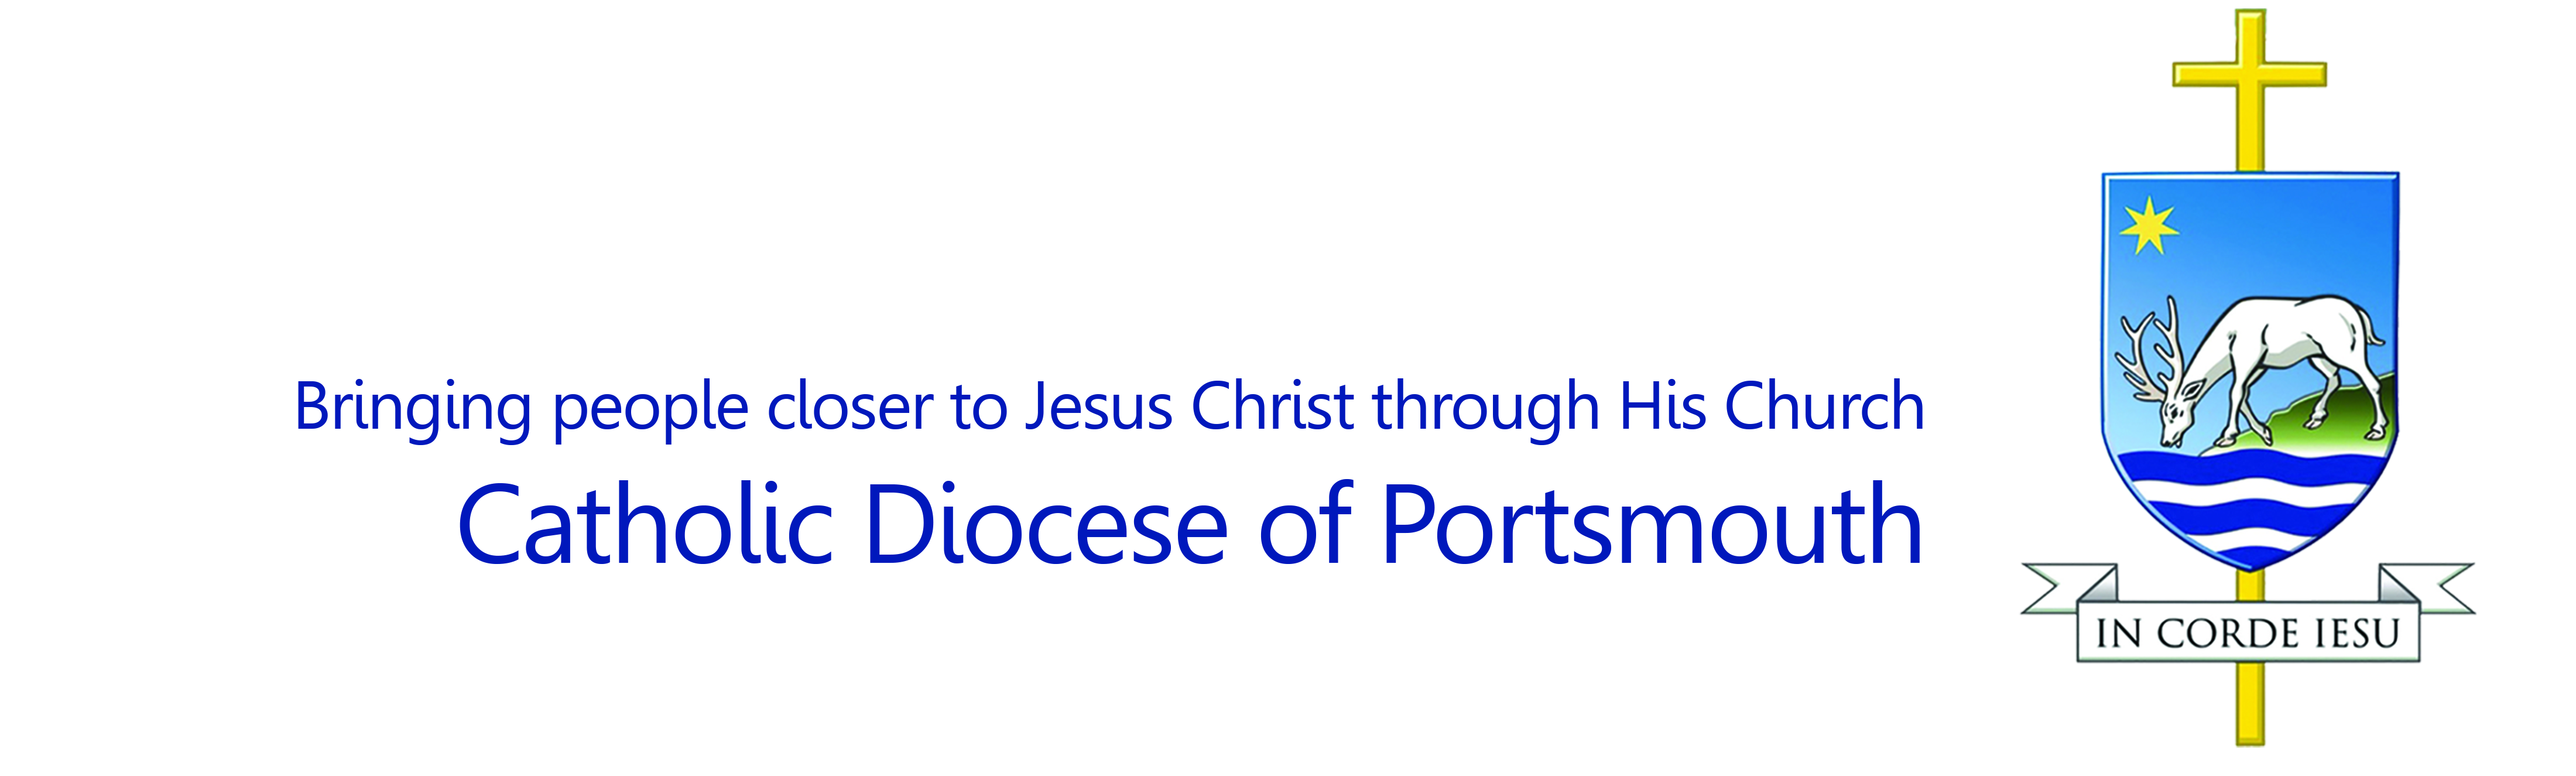 Portsmouth Diocese